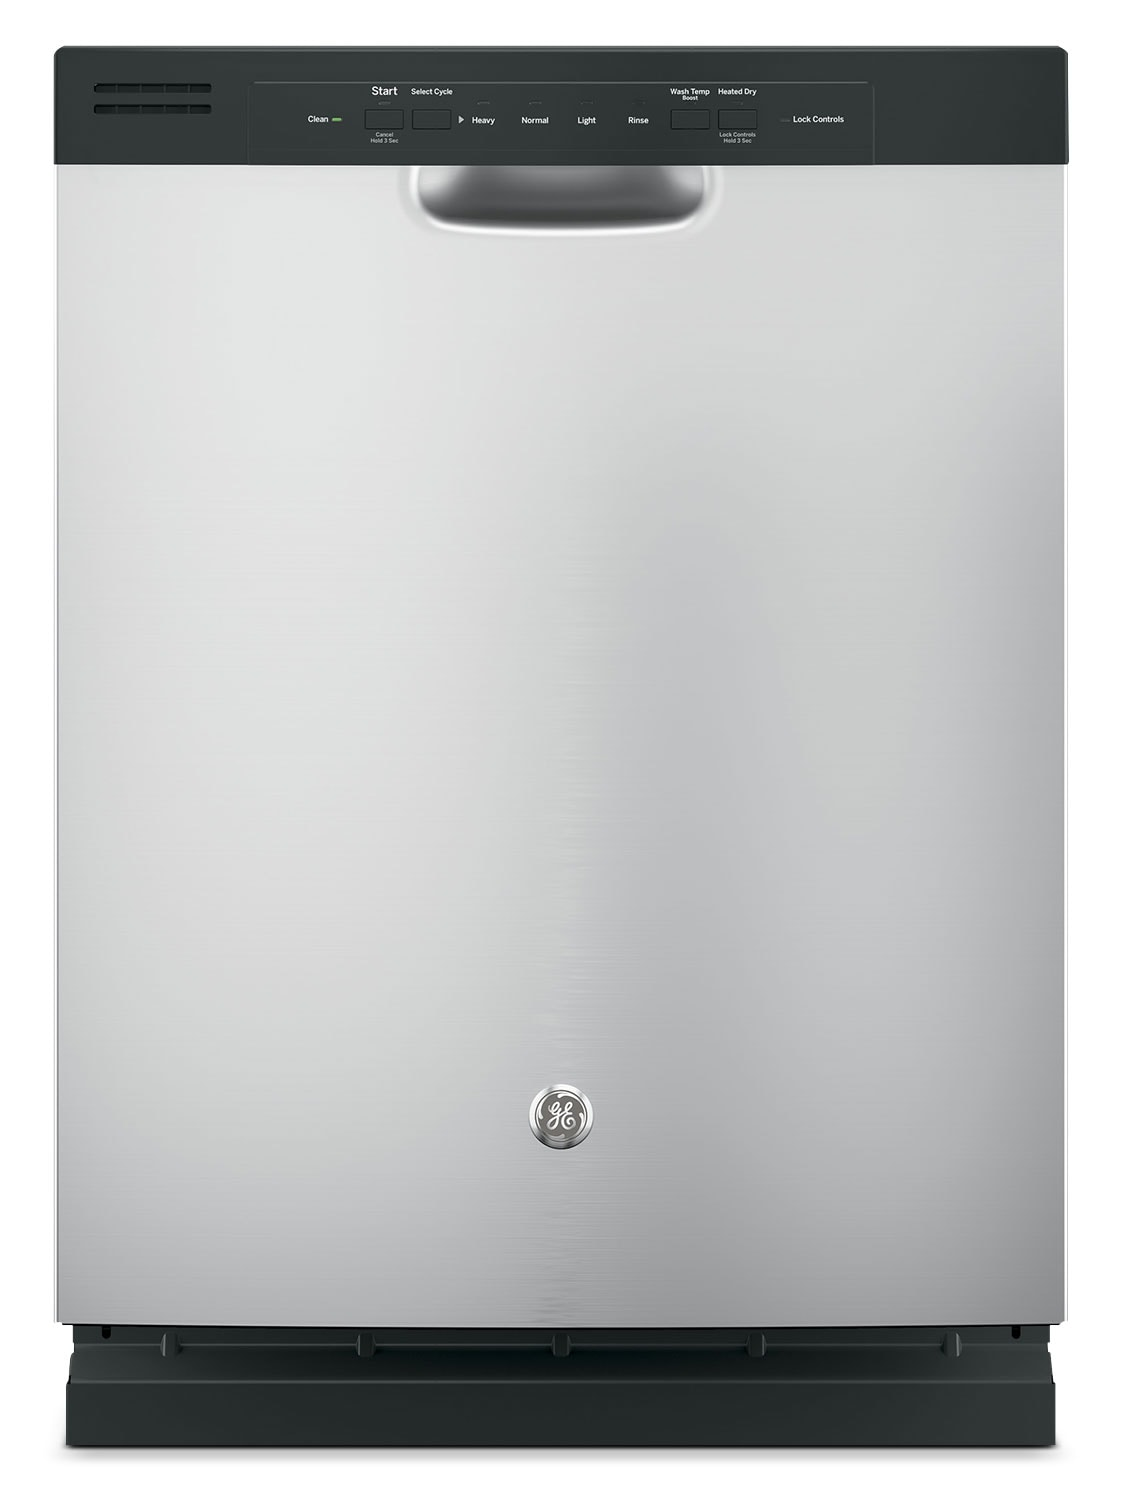 GE Built-In Tall-Tub Dishwasher – GDF510PSJSS